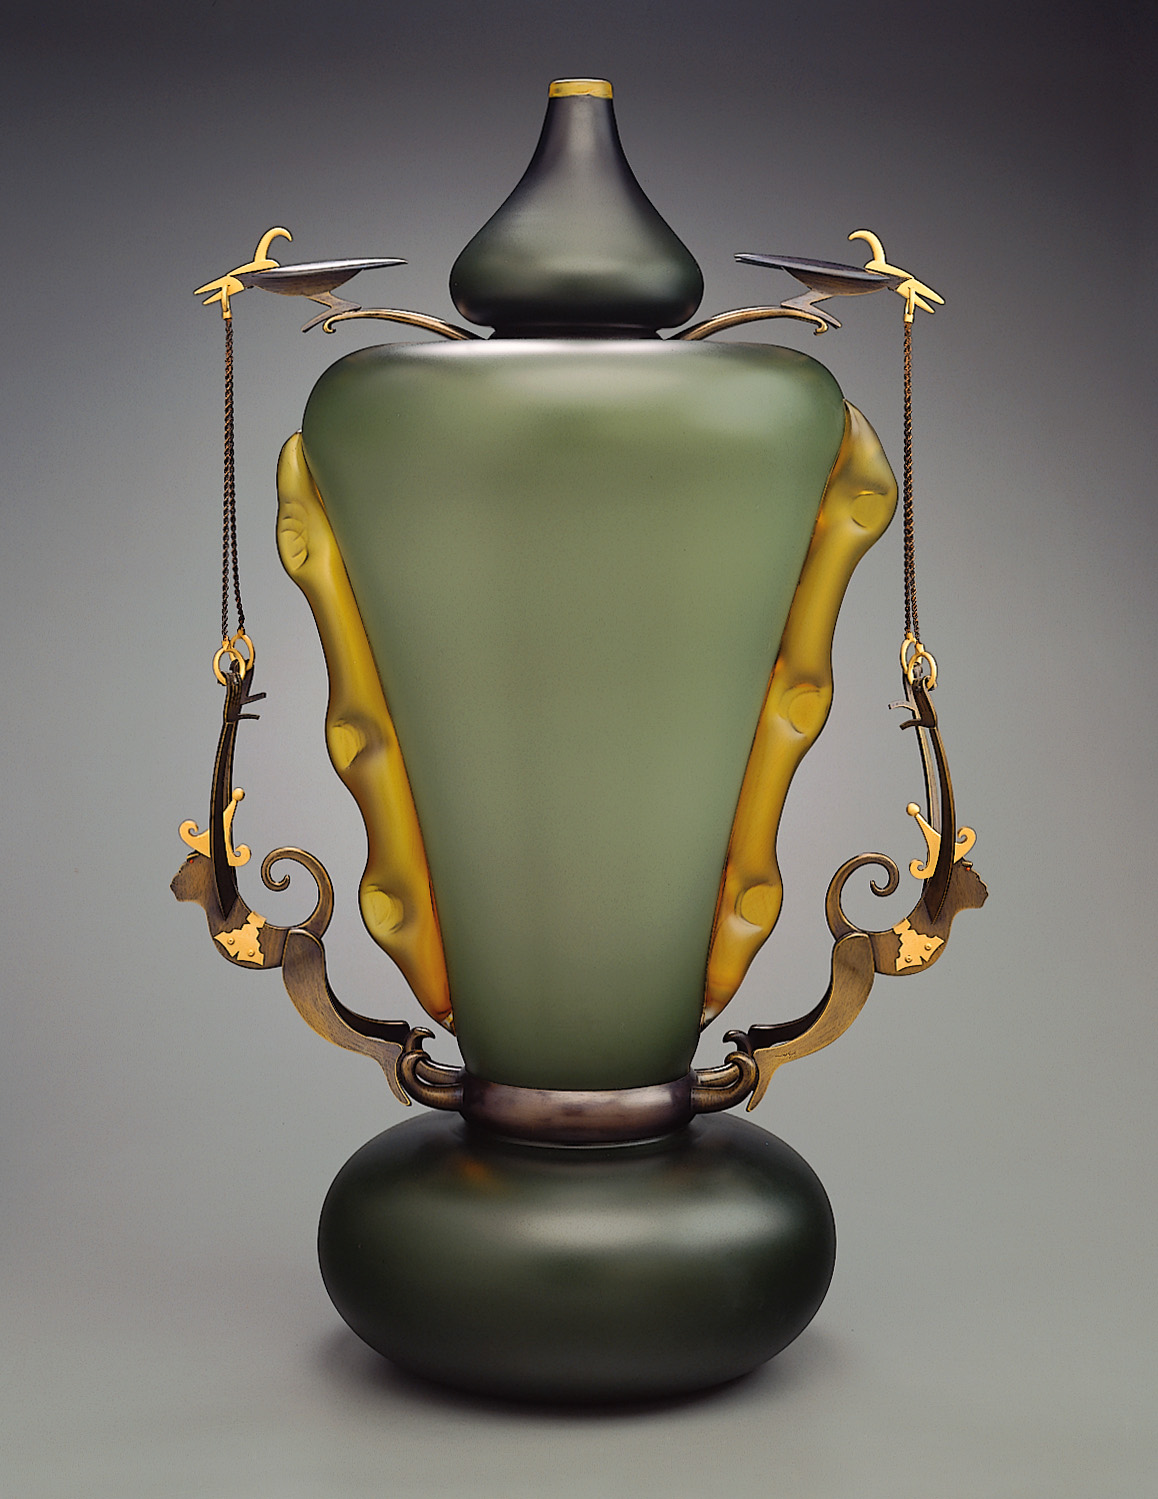 Falcons and Monkeys   1998. Blown glass, bronze and gold-plated bronze. 28½ x 18 x 11½""